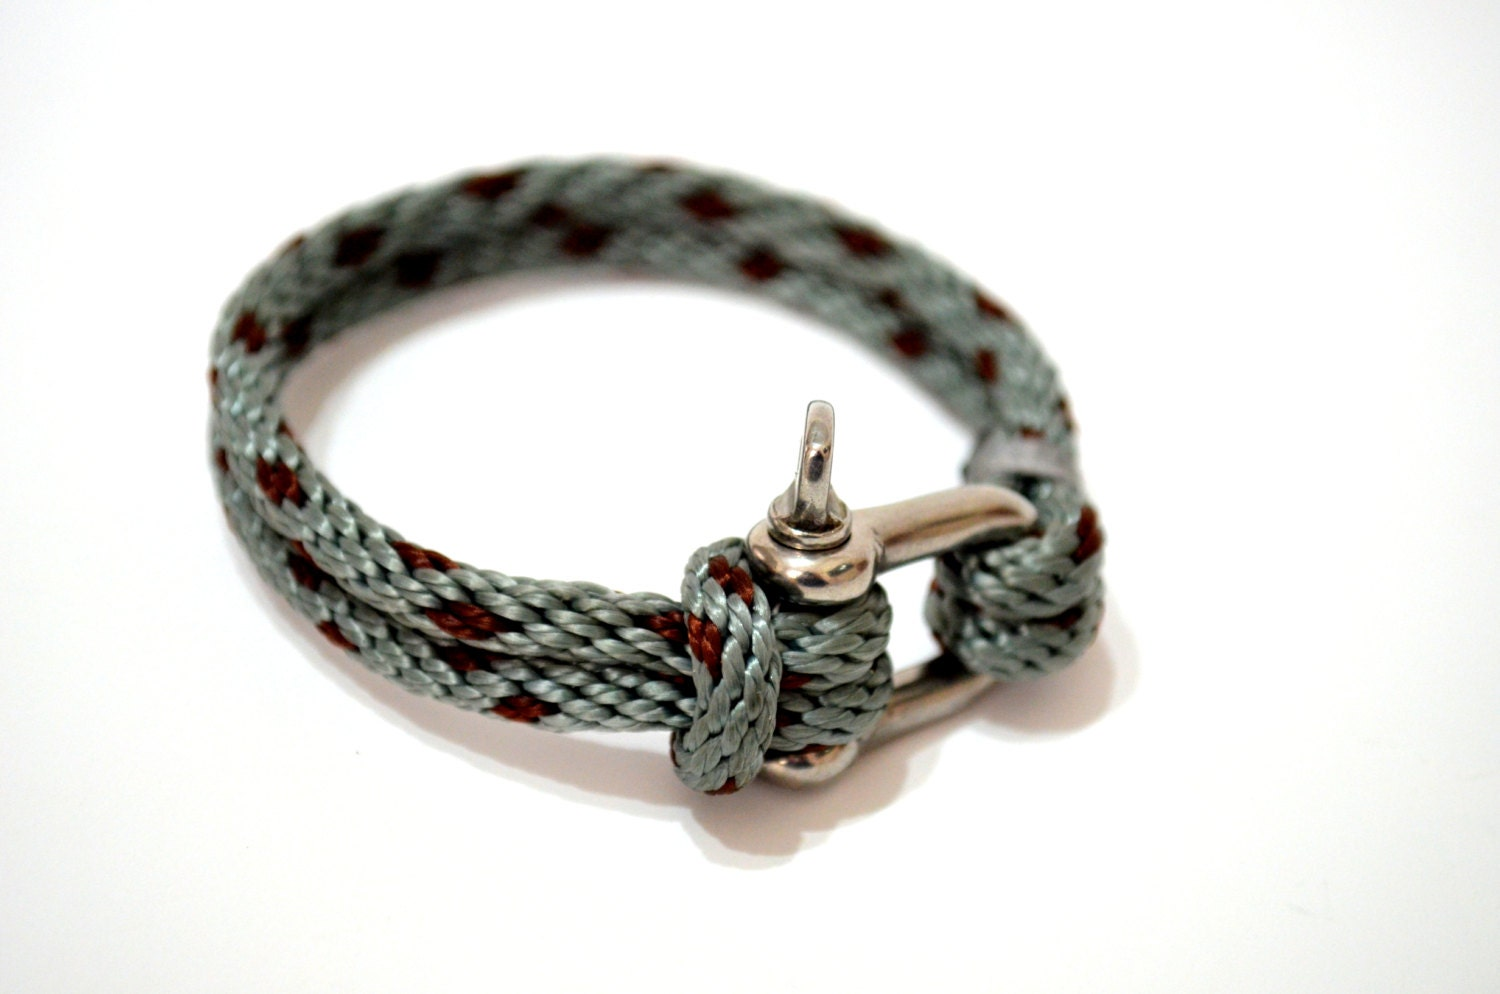 Bracelets For Men Bracelets for men can add a sophisticated and modern touch to any outfit, and they're available in a variety of materials and designs to complement his sense of style. Whether you're pulling together a classic look for date night or an edgier look for a night on the town, choose from a variety of bracelets for men to enhance.